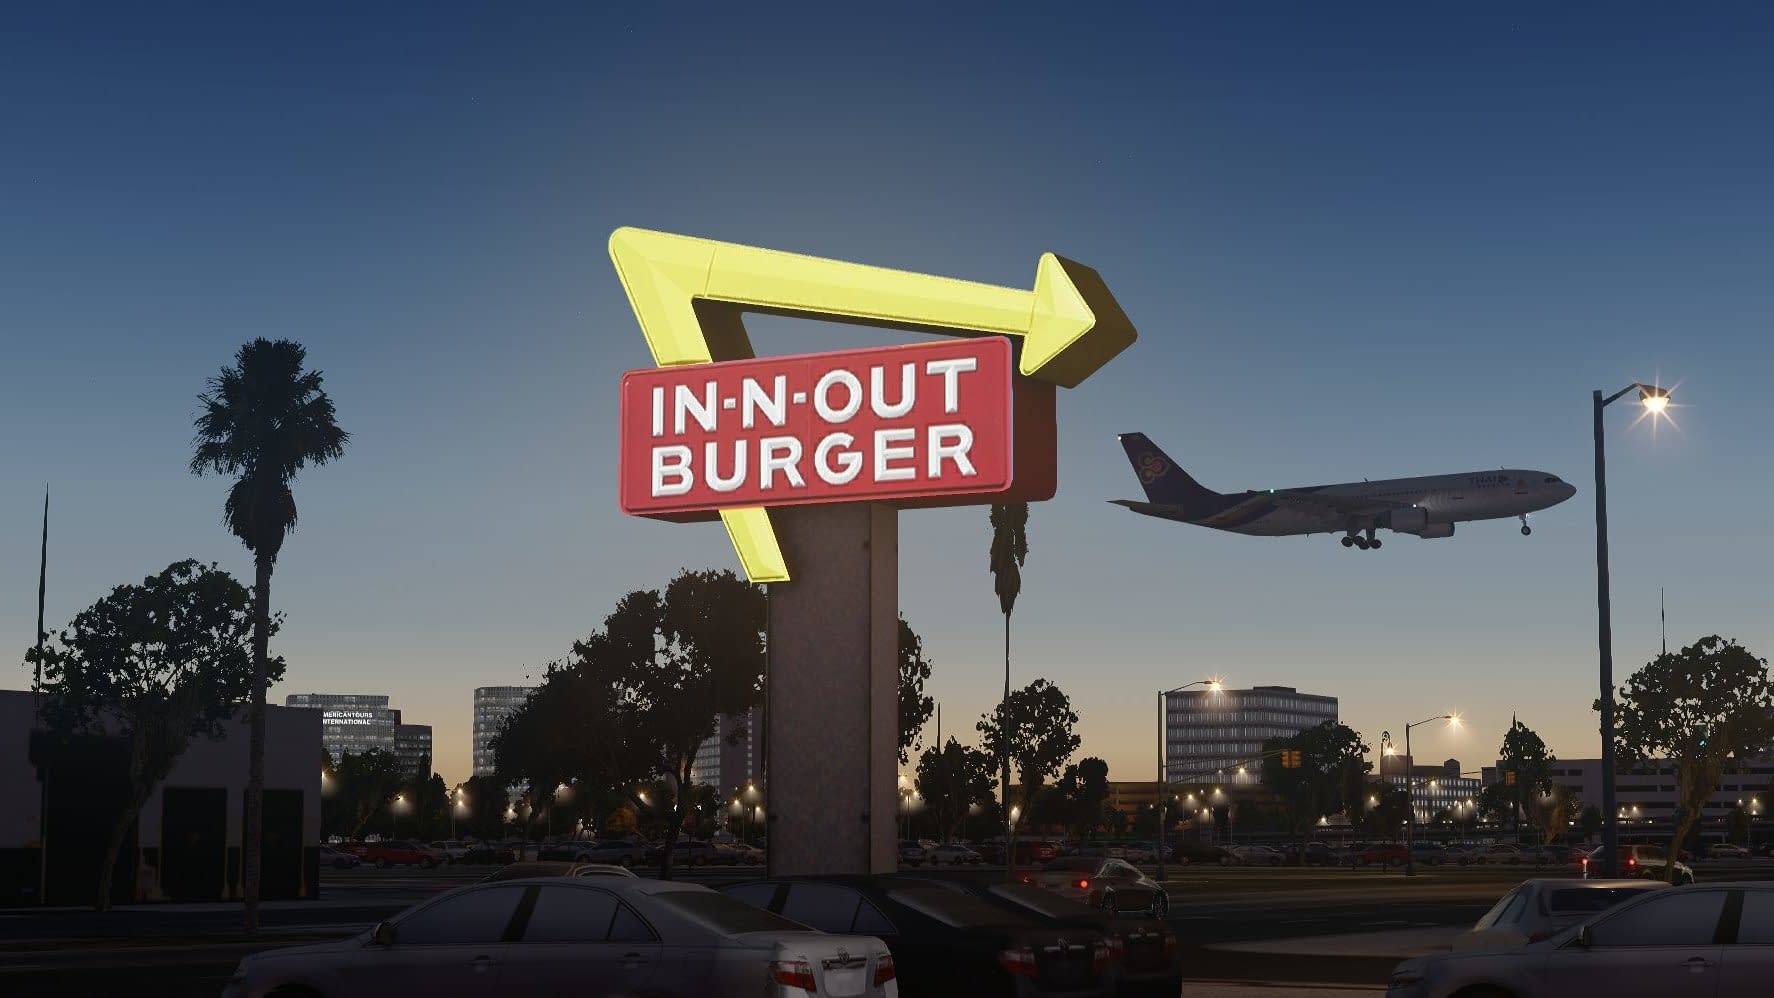 LAX In n out Burger in Flight Simulator